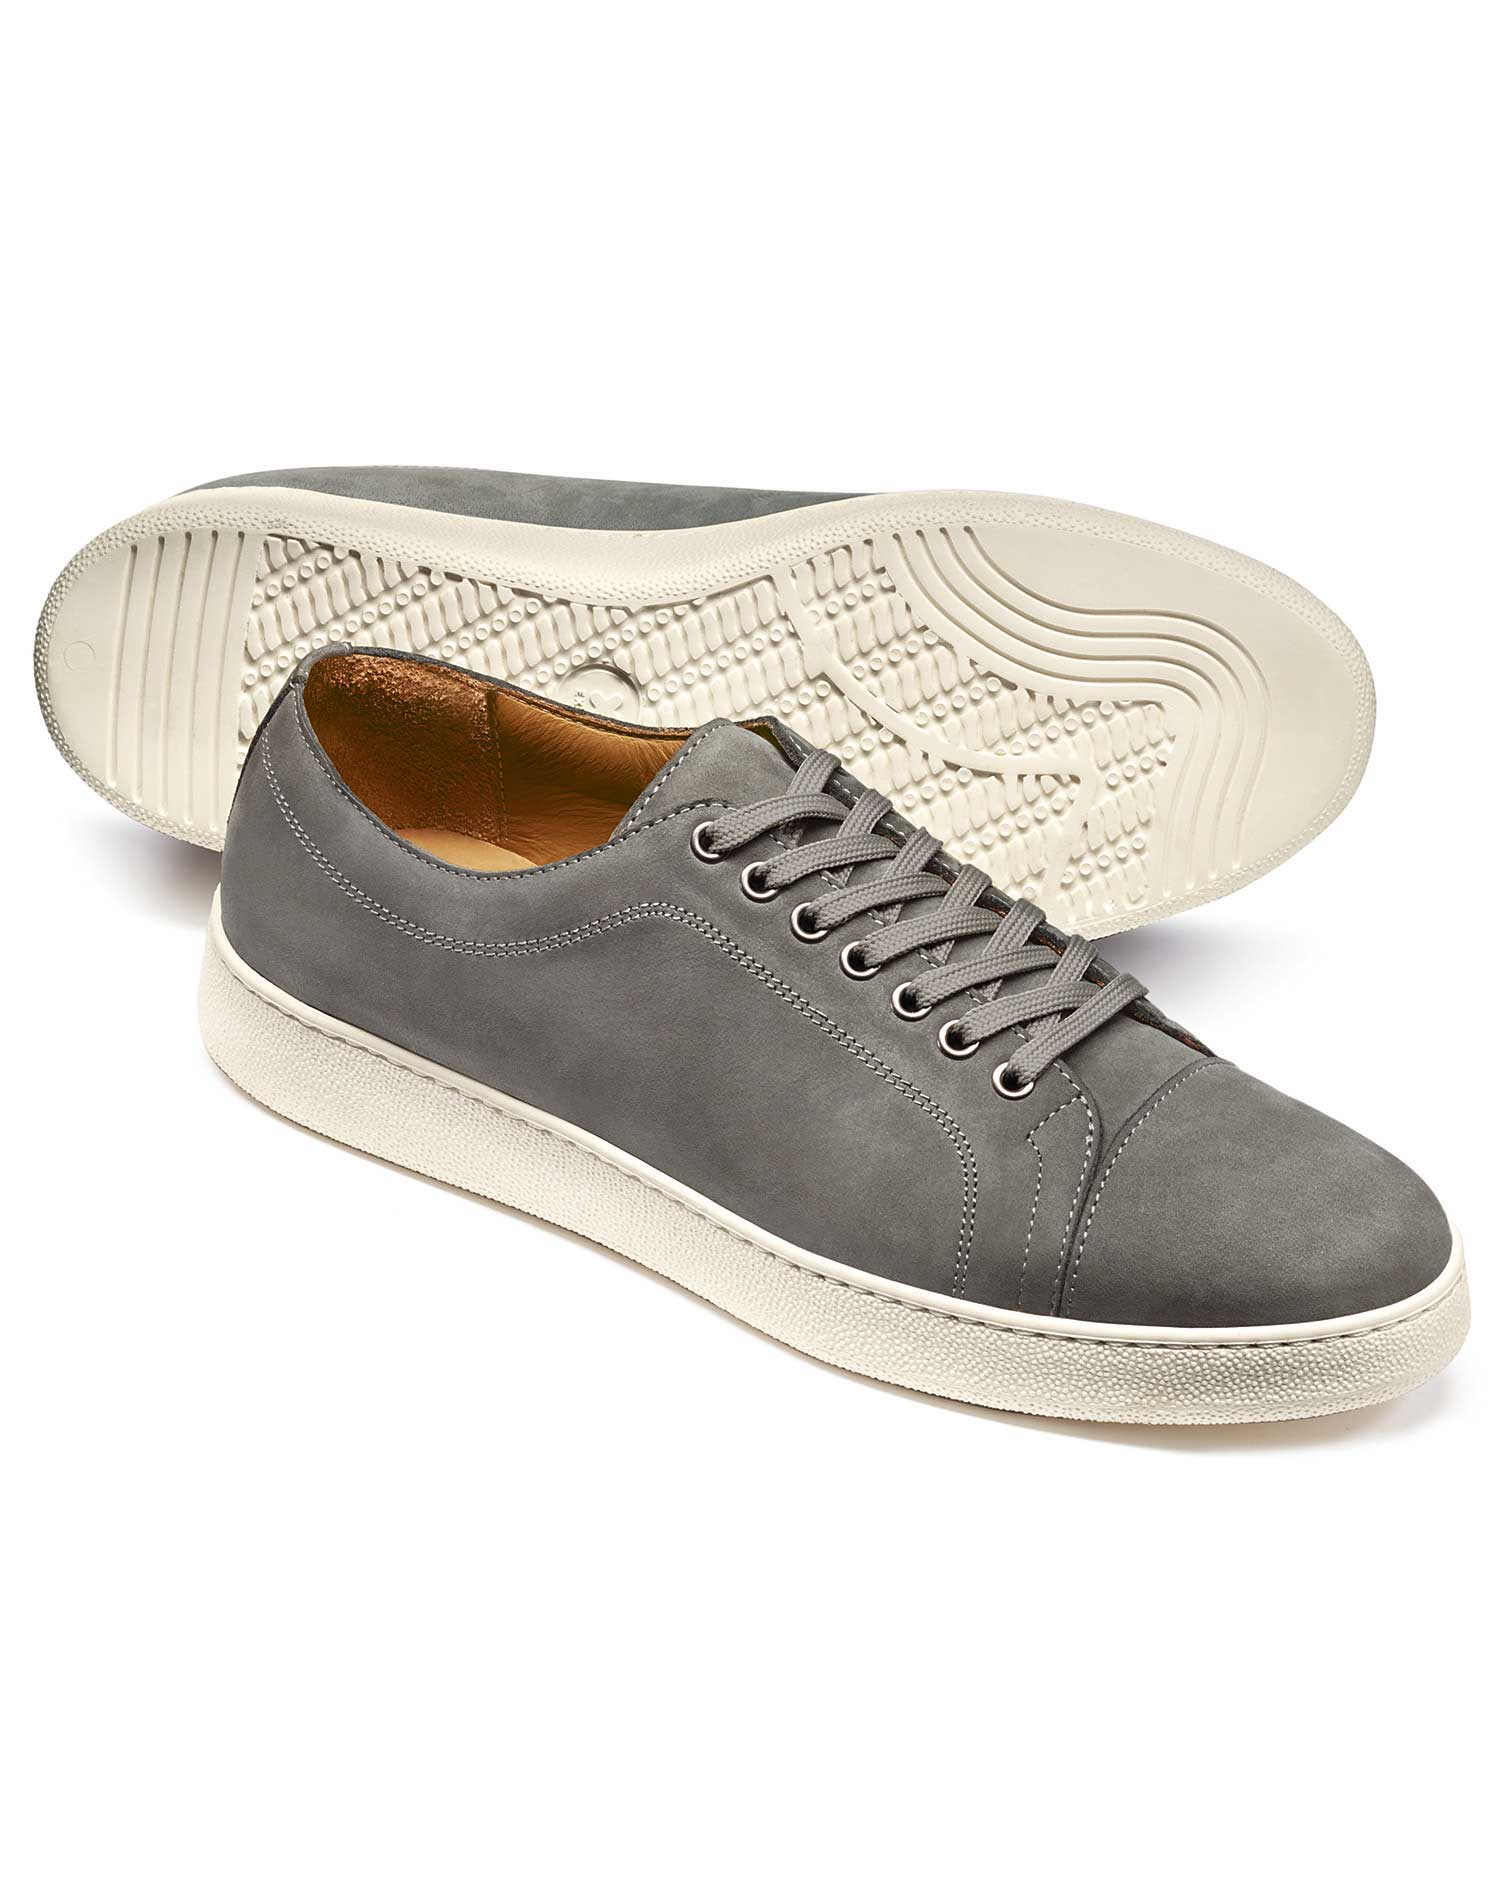 Light Grey Nubuck Leather Toe Cap Trainers Size 10.5 R by Charles Tyrwhitt